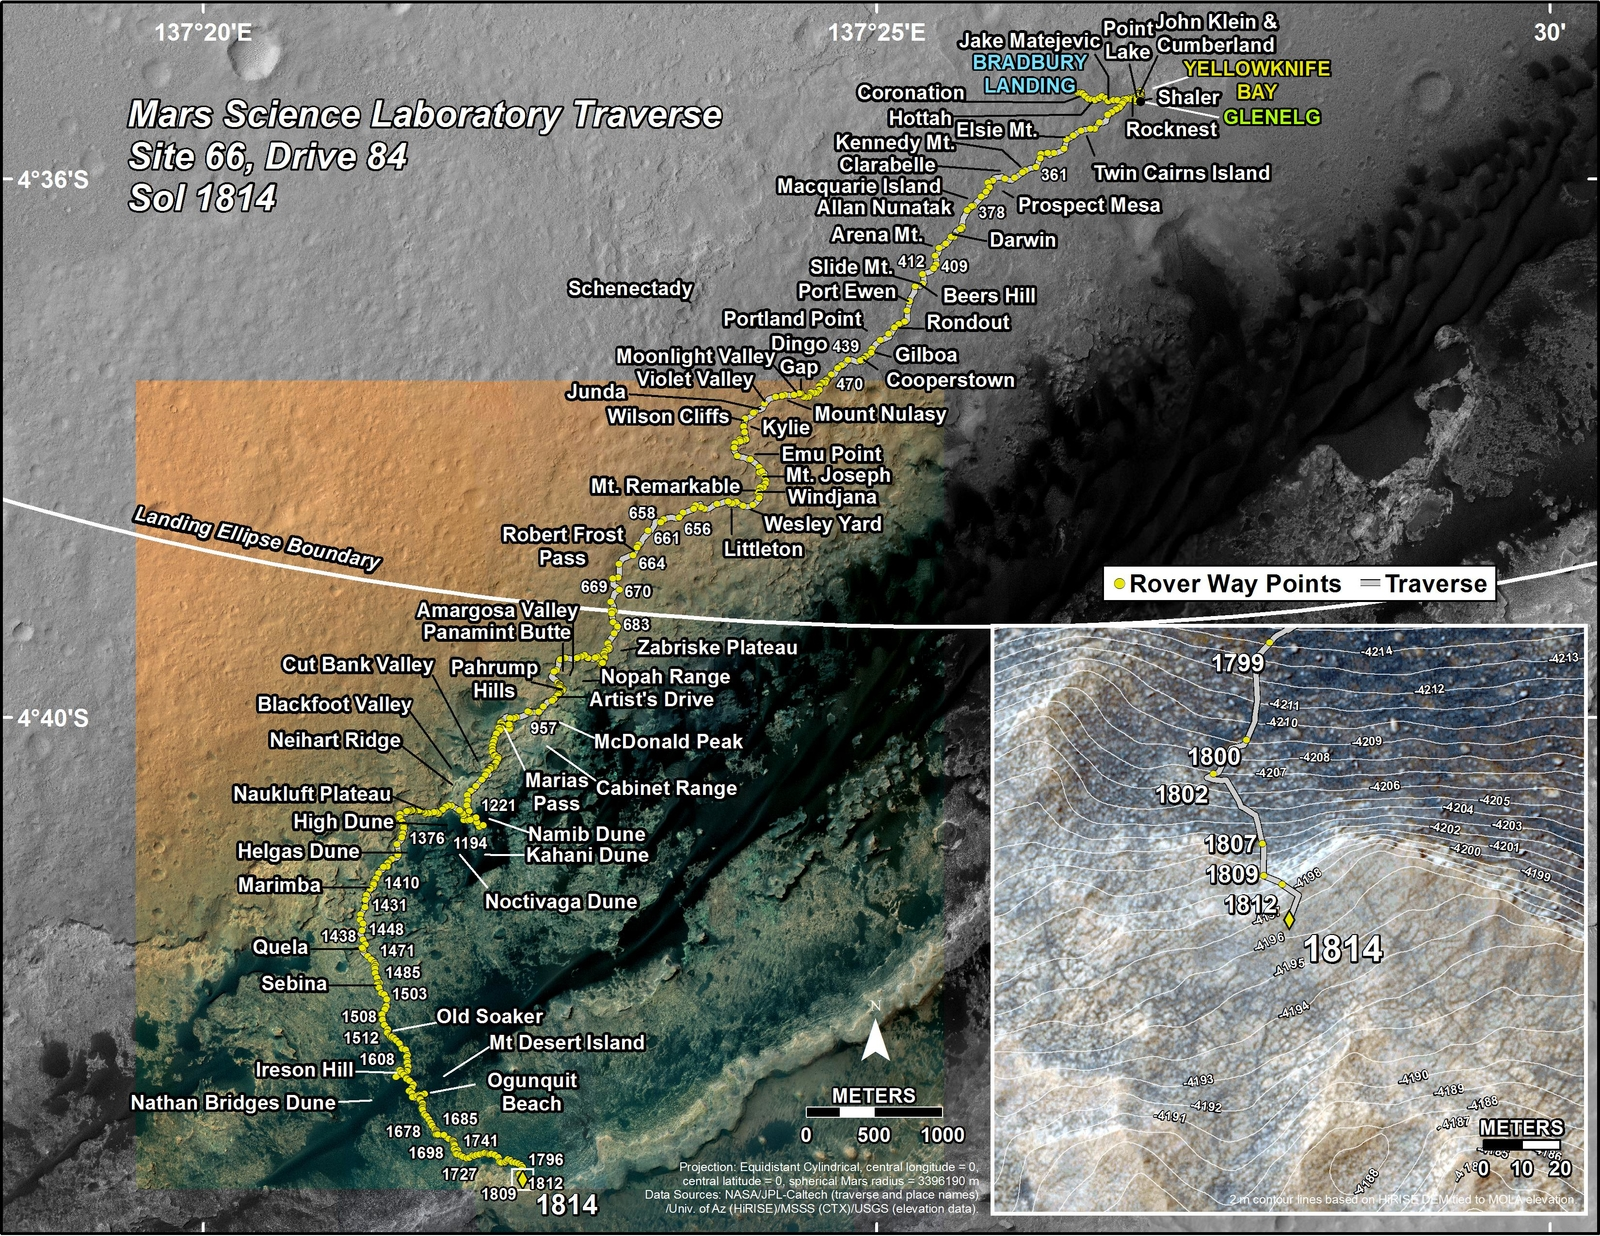 This map shows the route driven by NASA's Mars rover Curiosity through the 1814 Martian day, or sol, of the rover's mission on Mars (September 13, 2017).